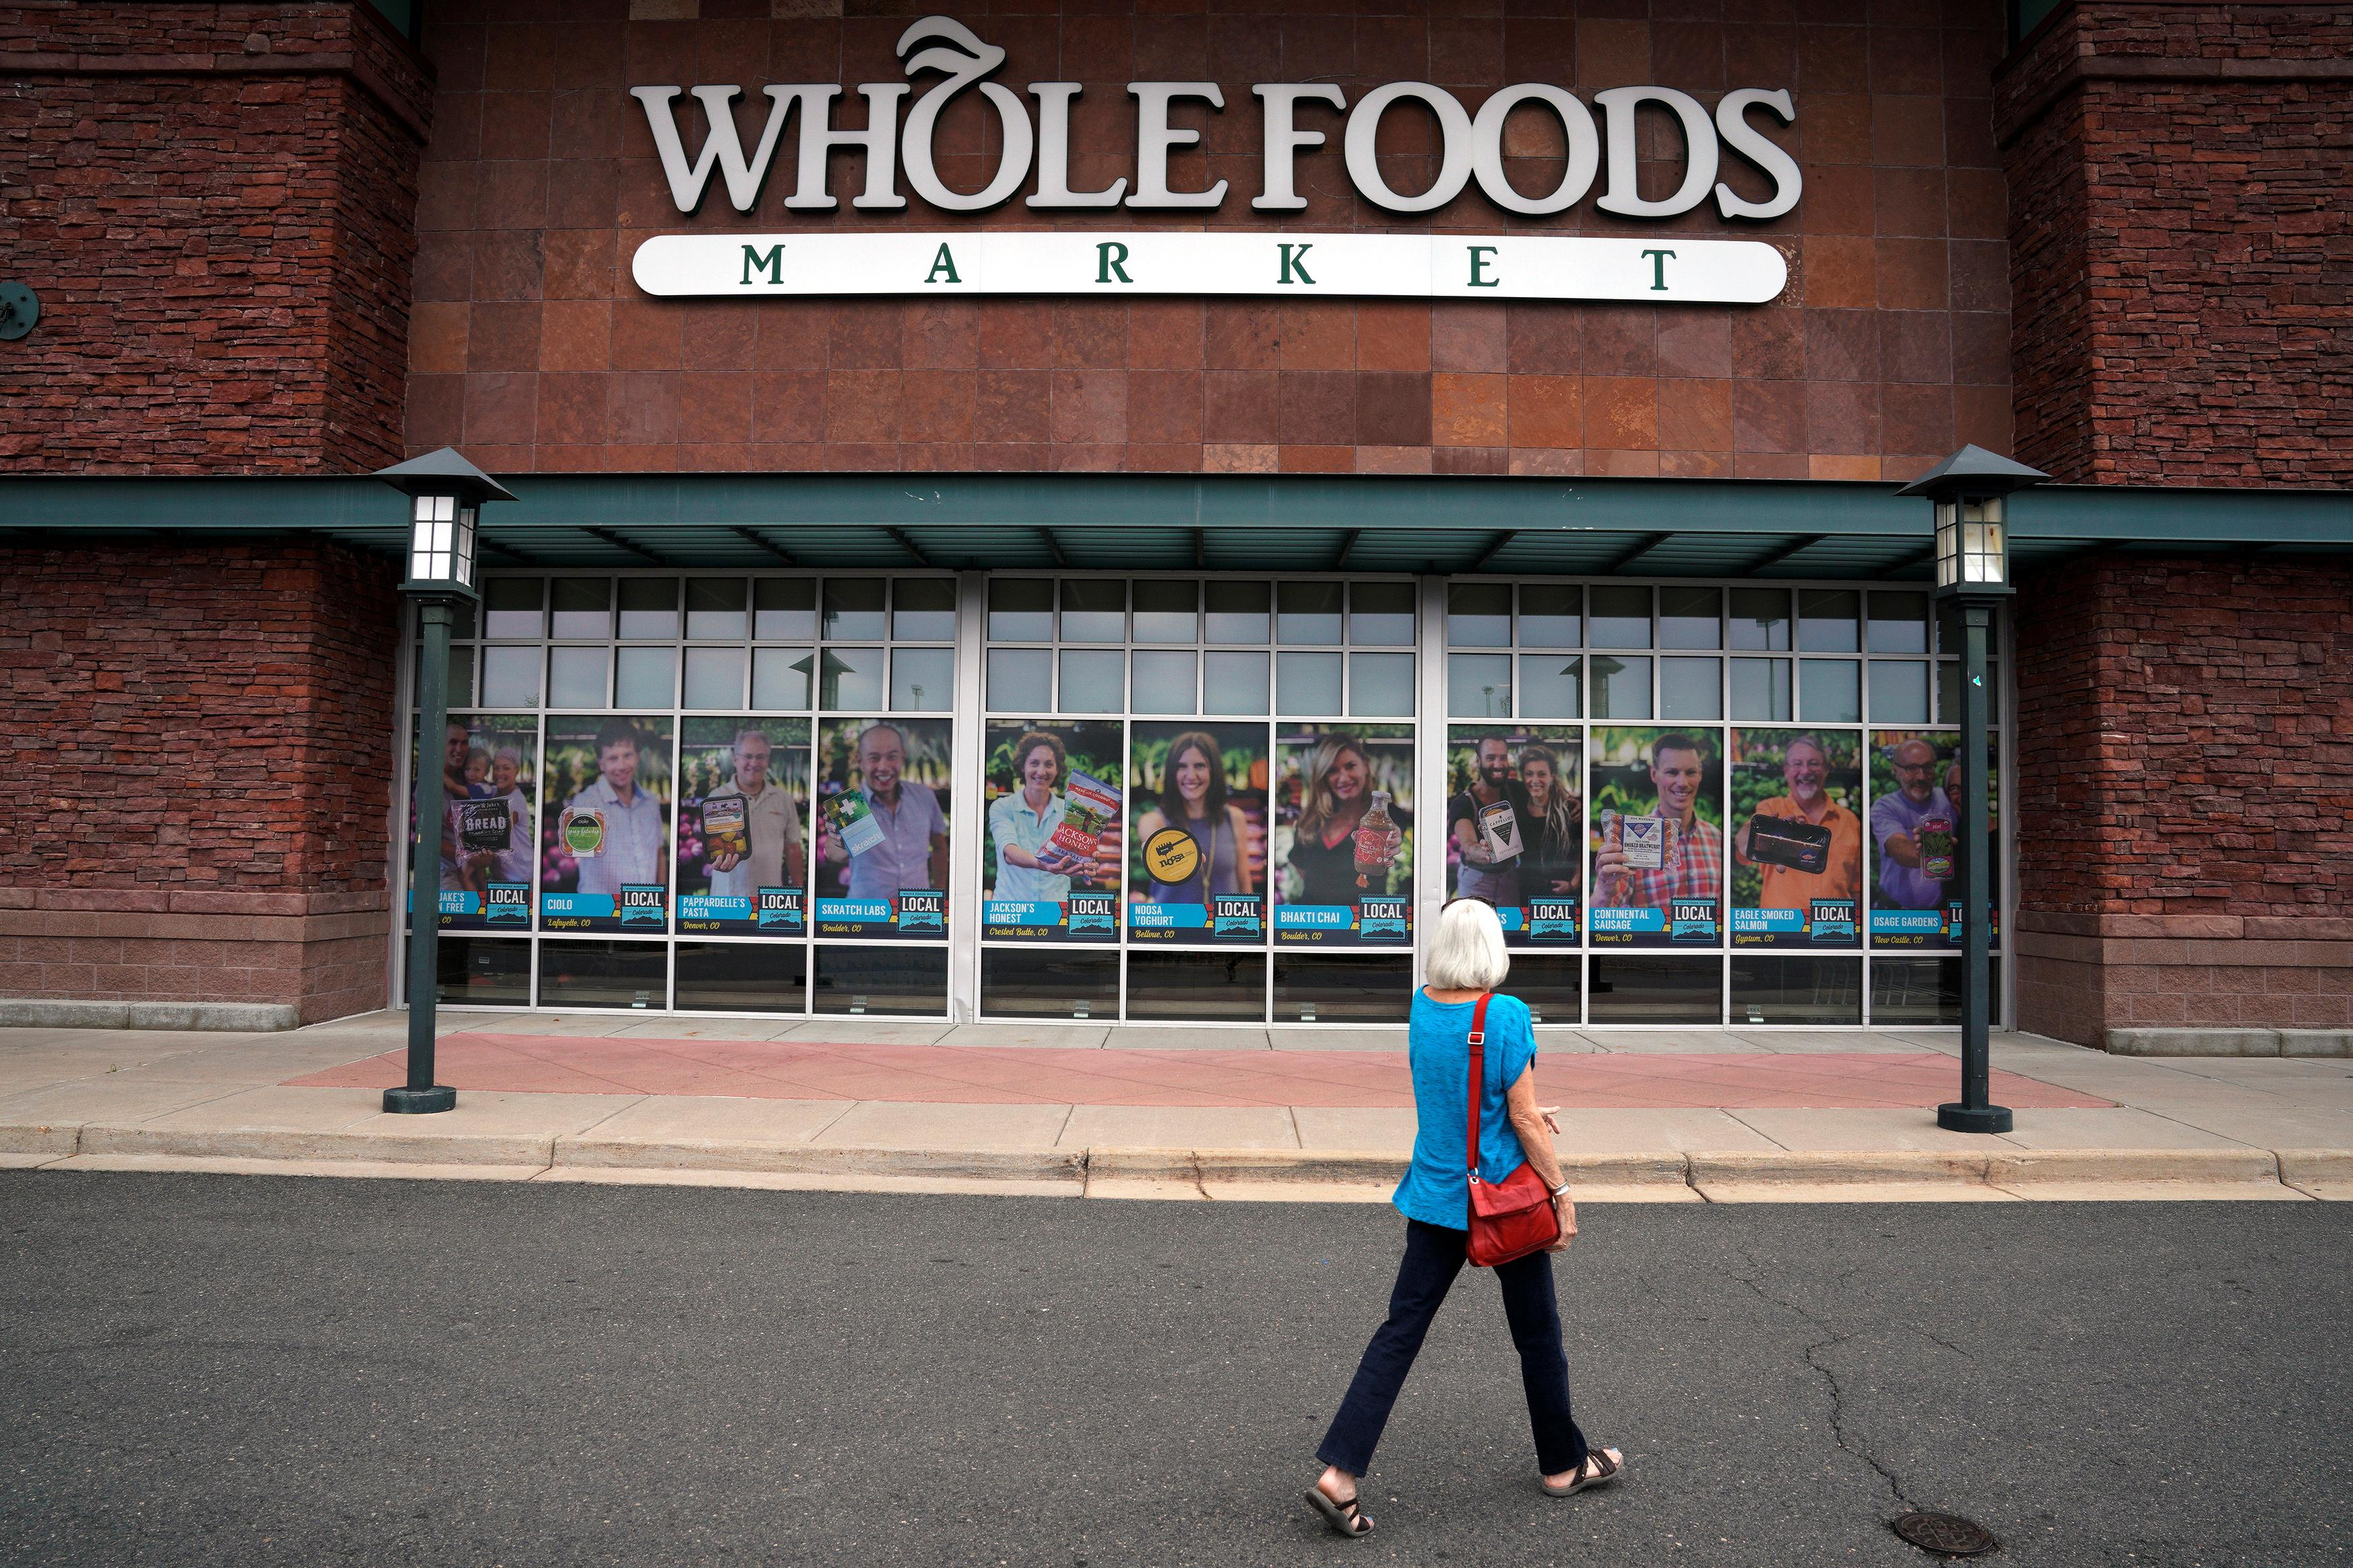 'Yellow Fever' Asian Restaurant: Whole Foods Criticized Over Eatery In California Store